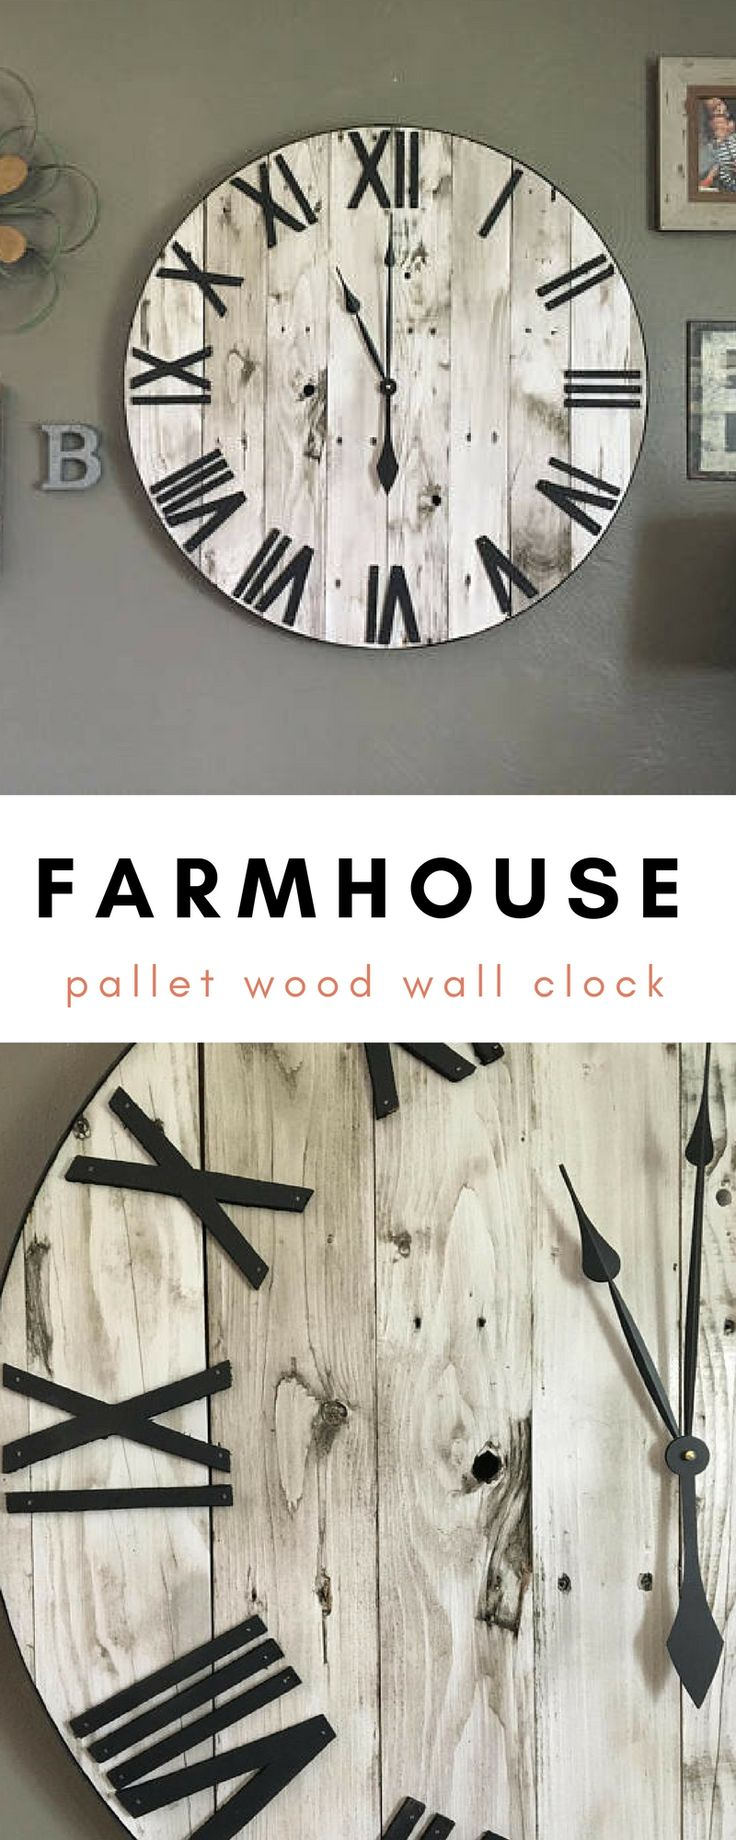 This Farmhouse style oversized wall clock would look so great on my living room wall, love the look of this! #ad #farmhouseclock #oversizedclock #rusticclock #largewoodenclock